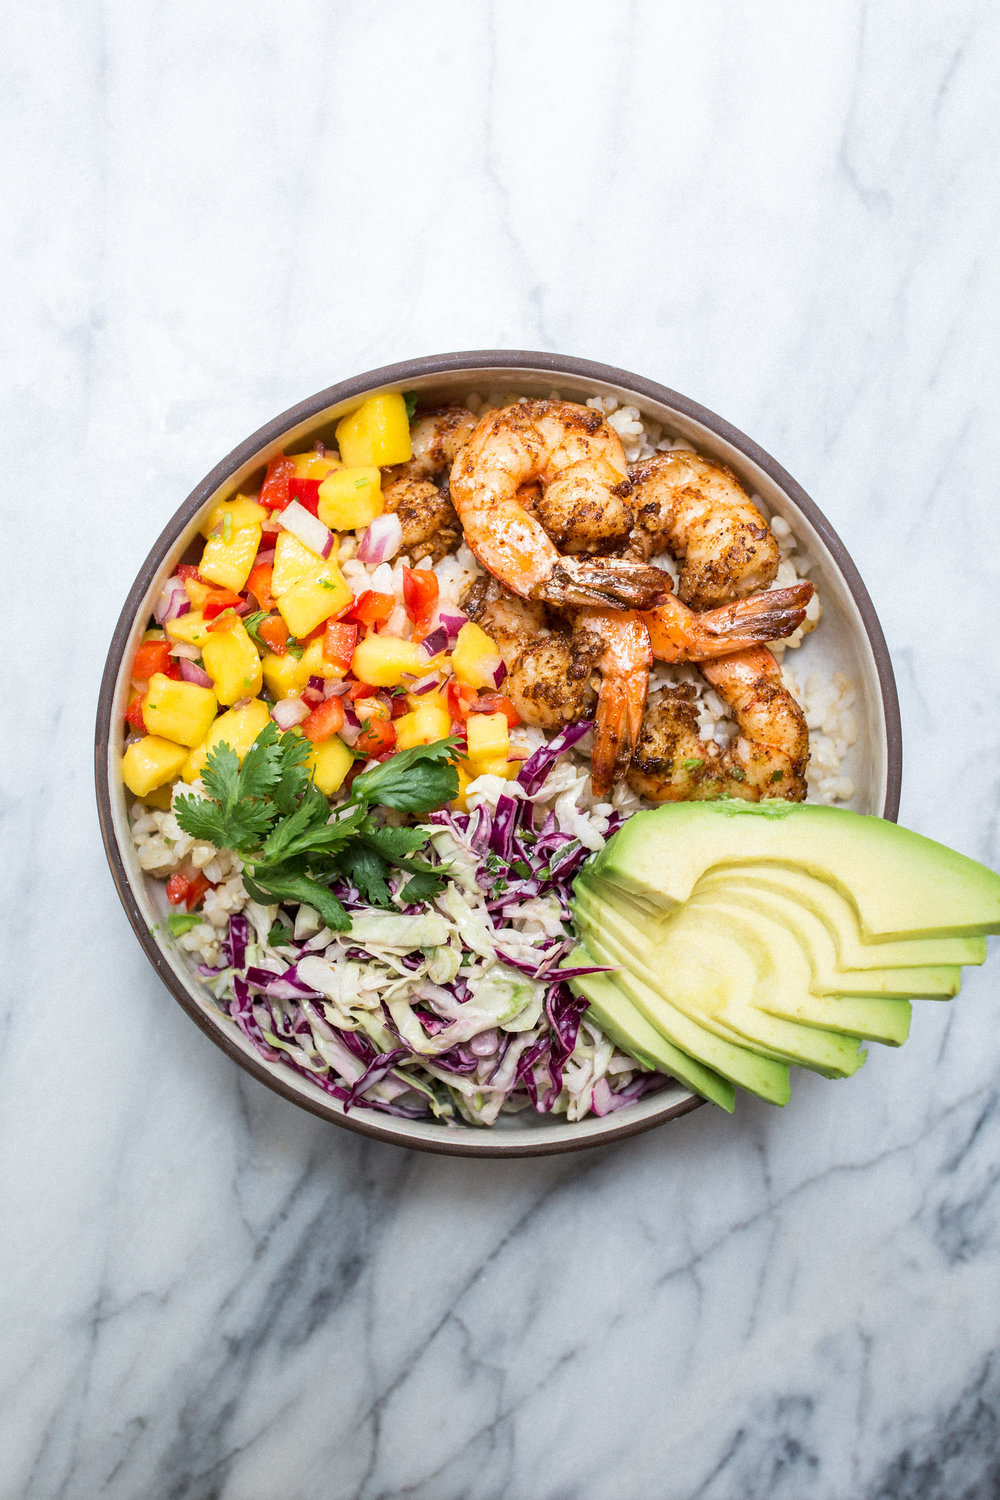 Shrimp taco bowl - honeysuckle